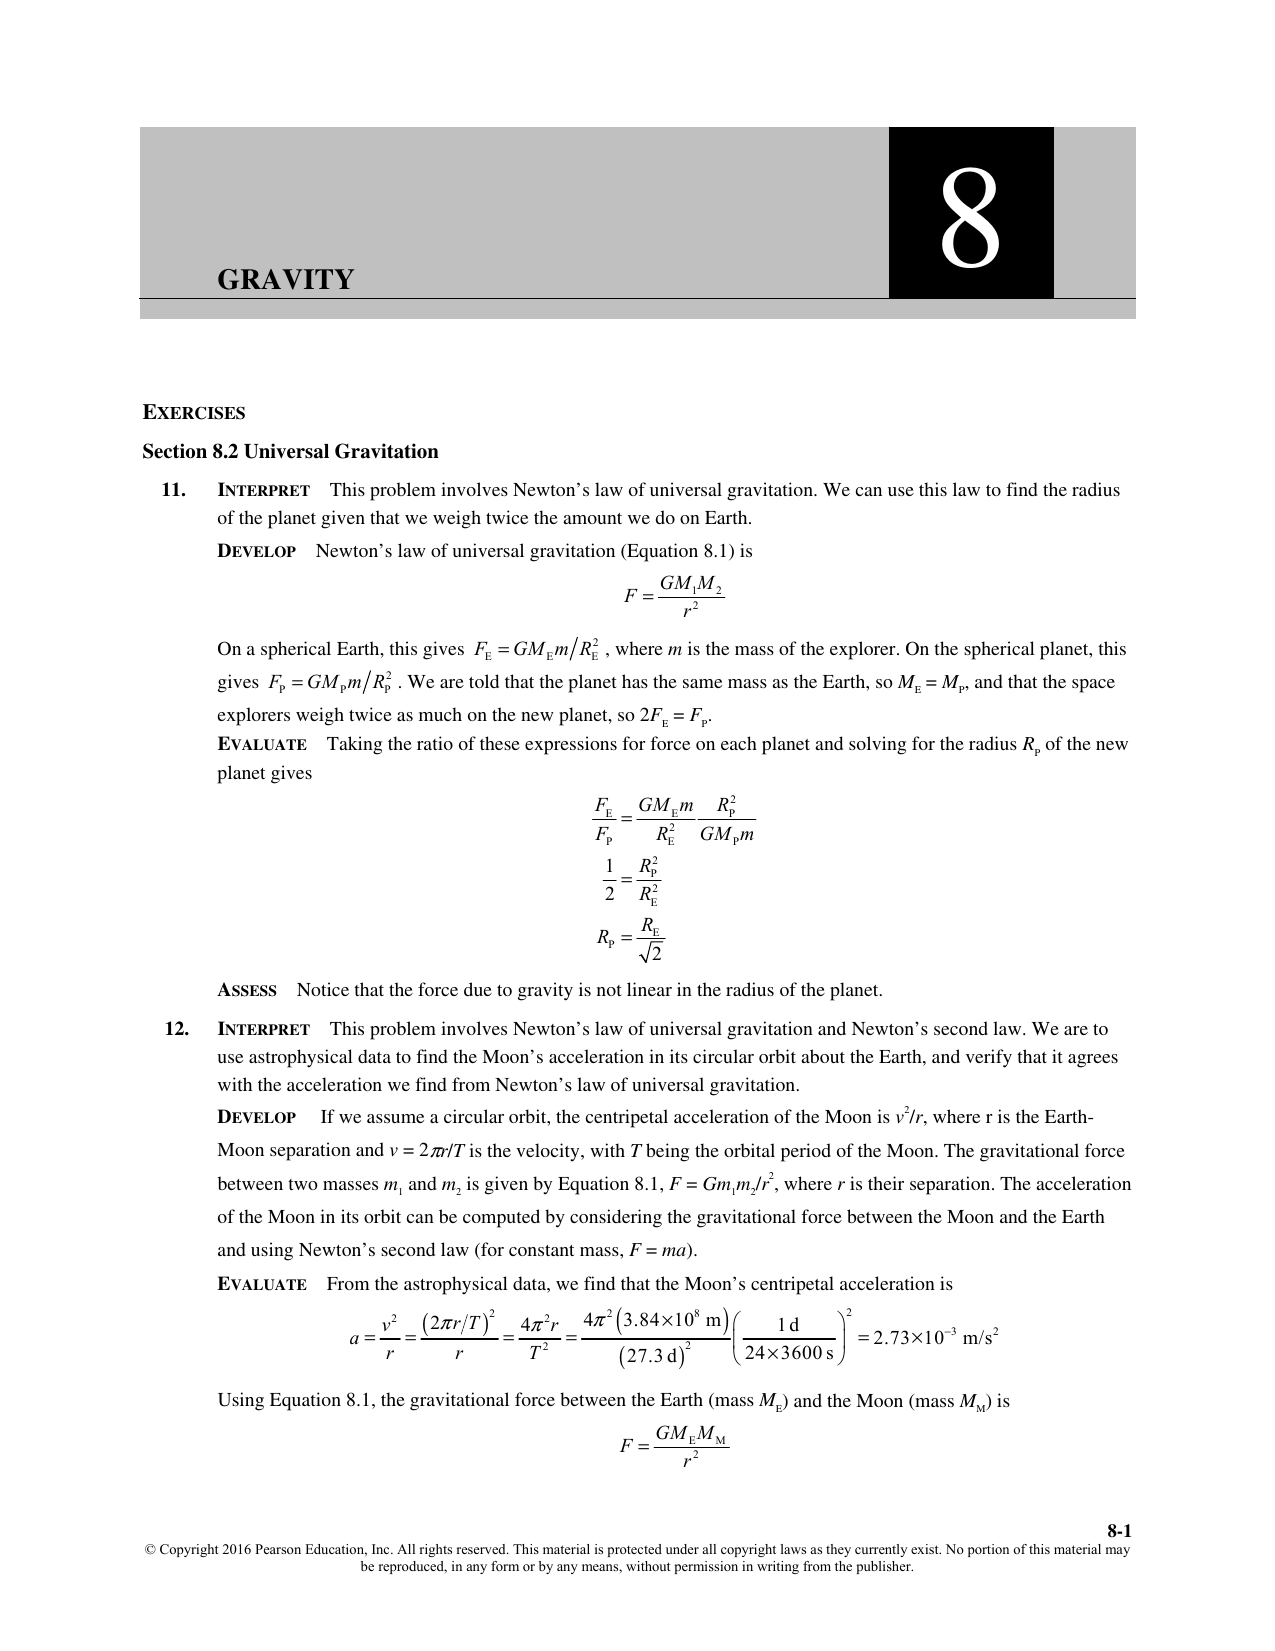 Chapter 8 solutions - University of Puget Sound